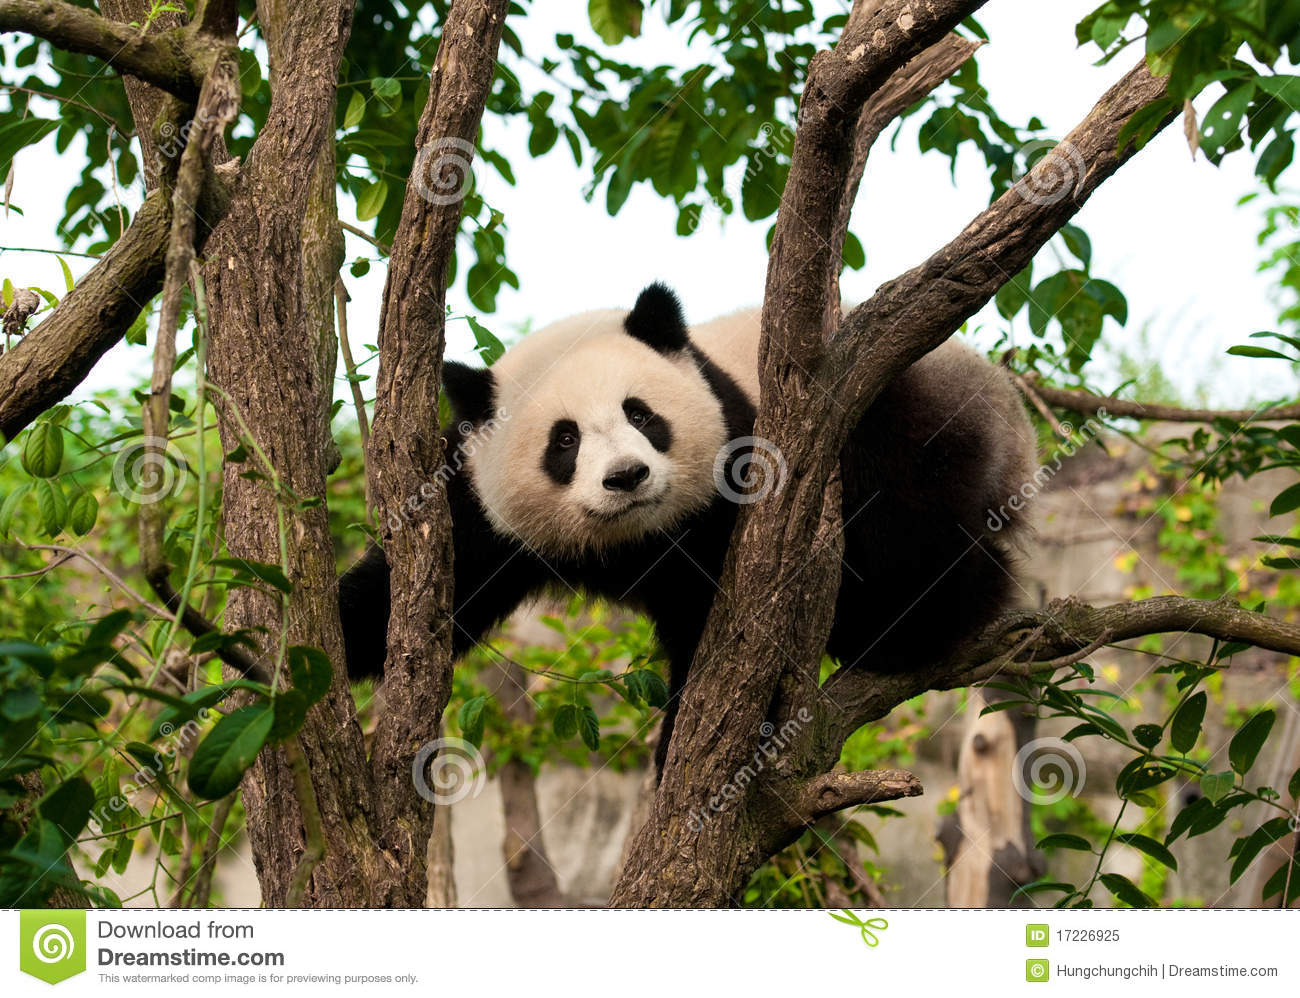 Cute Giant Panda Bear Climbing A Tree Royalty Free Stock Photo - Image ...